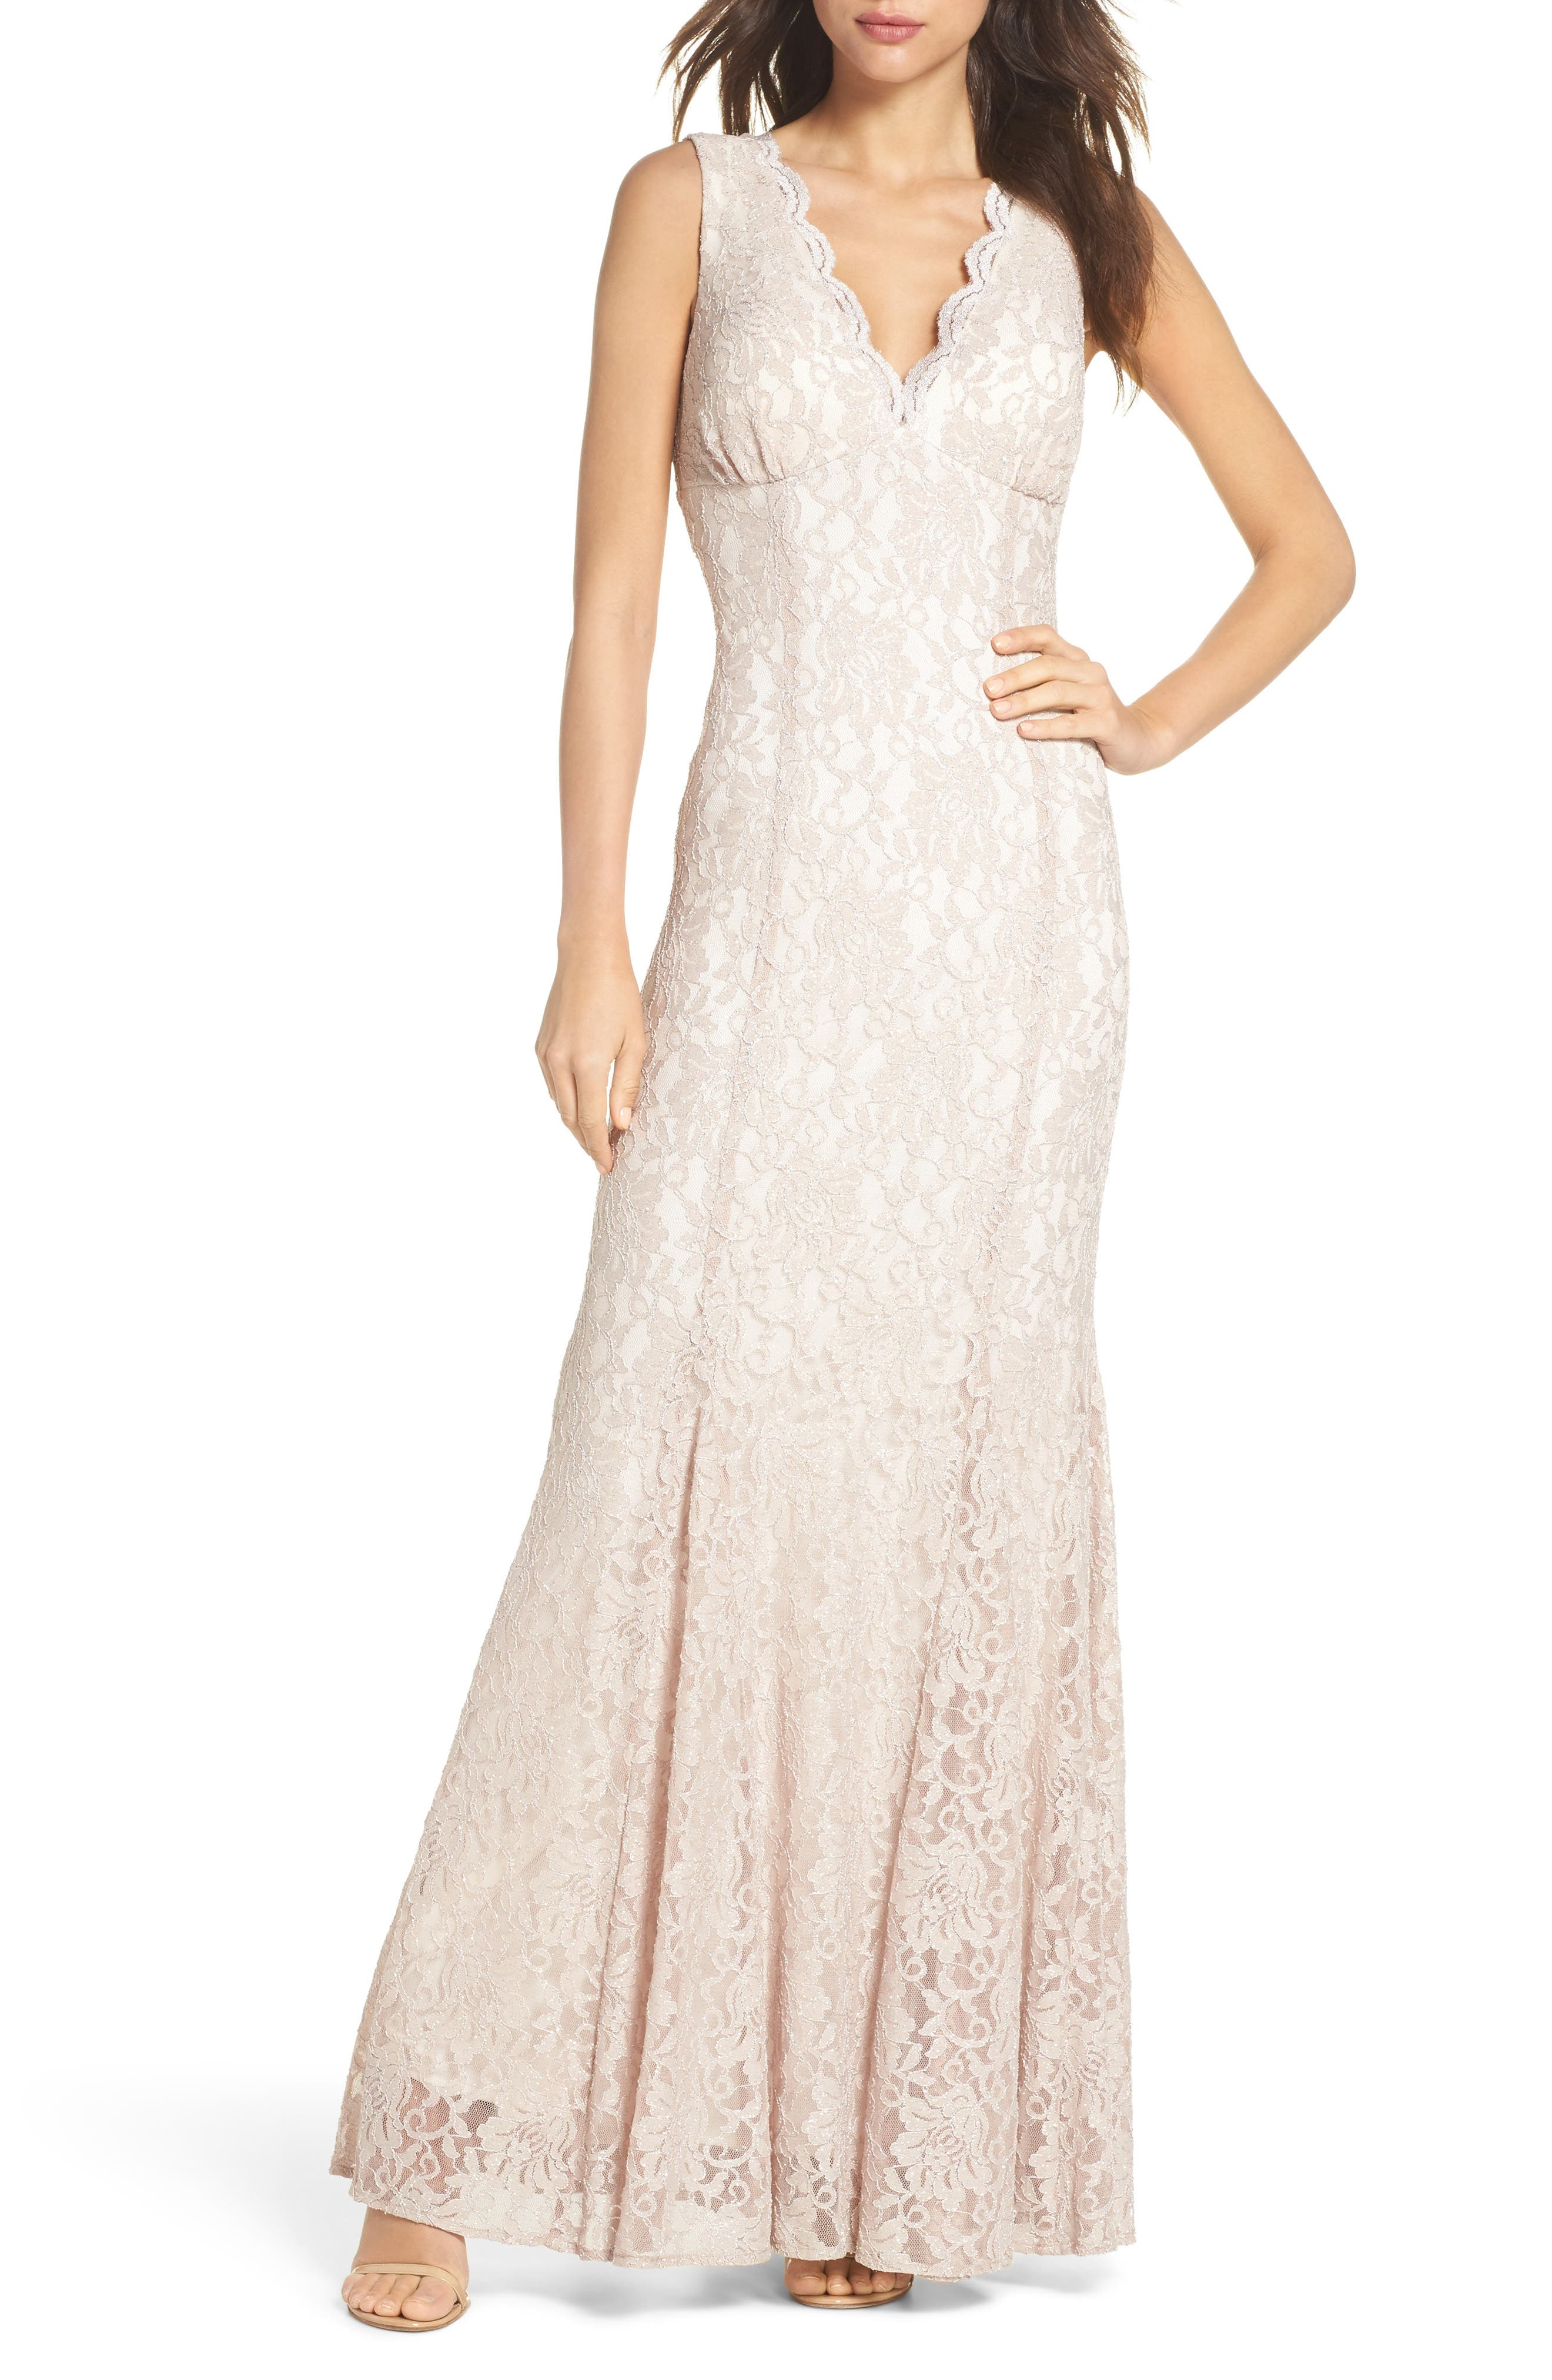 Glitter Lace Trumpet Dress,                             Main thumbnail 1, color,                             CHAMPAGNE / IVORY